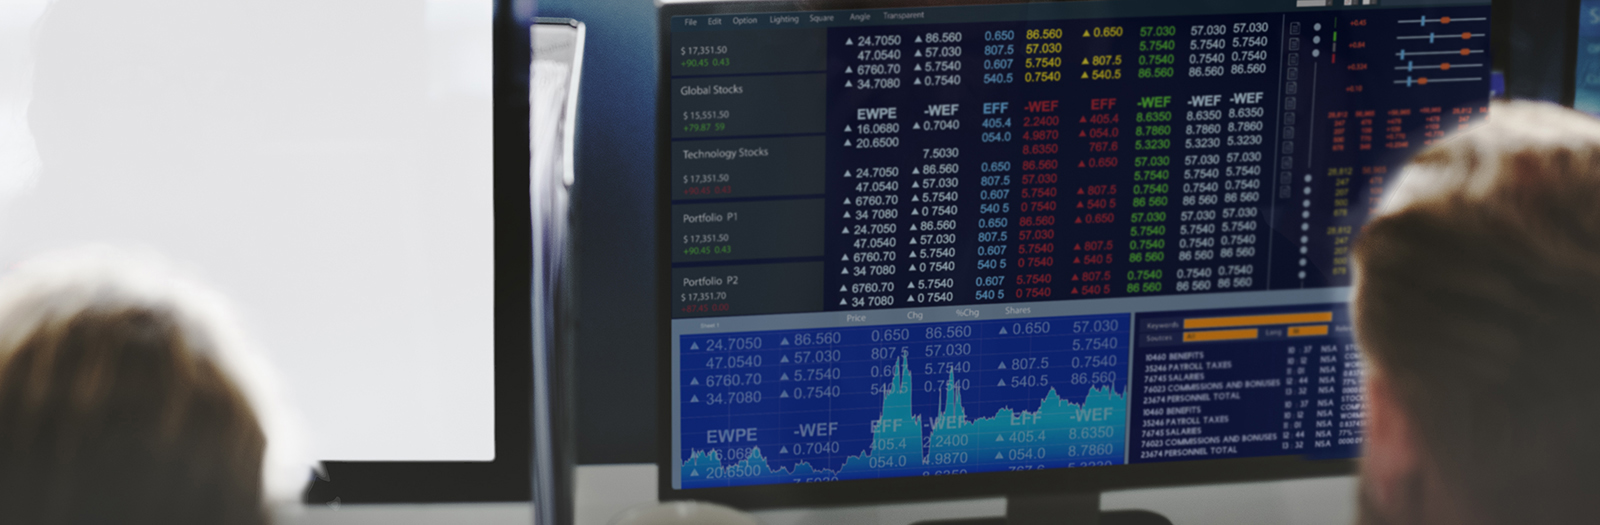 Bloomberg Trading Platform Training - The Best Trading In World